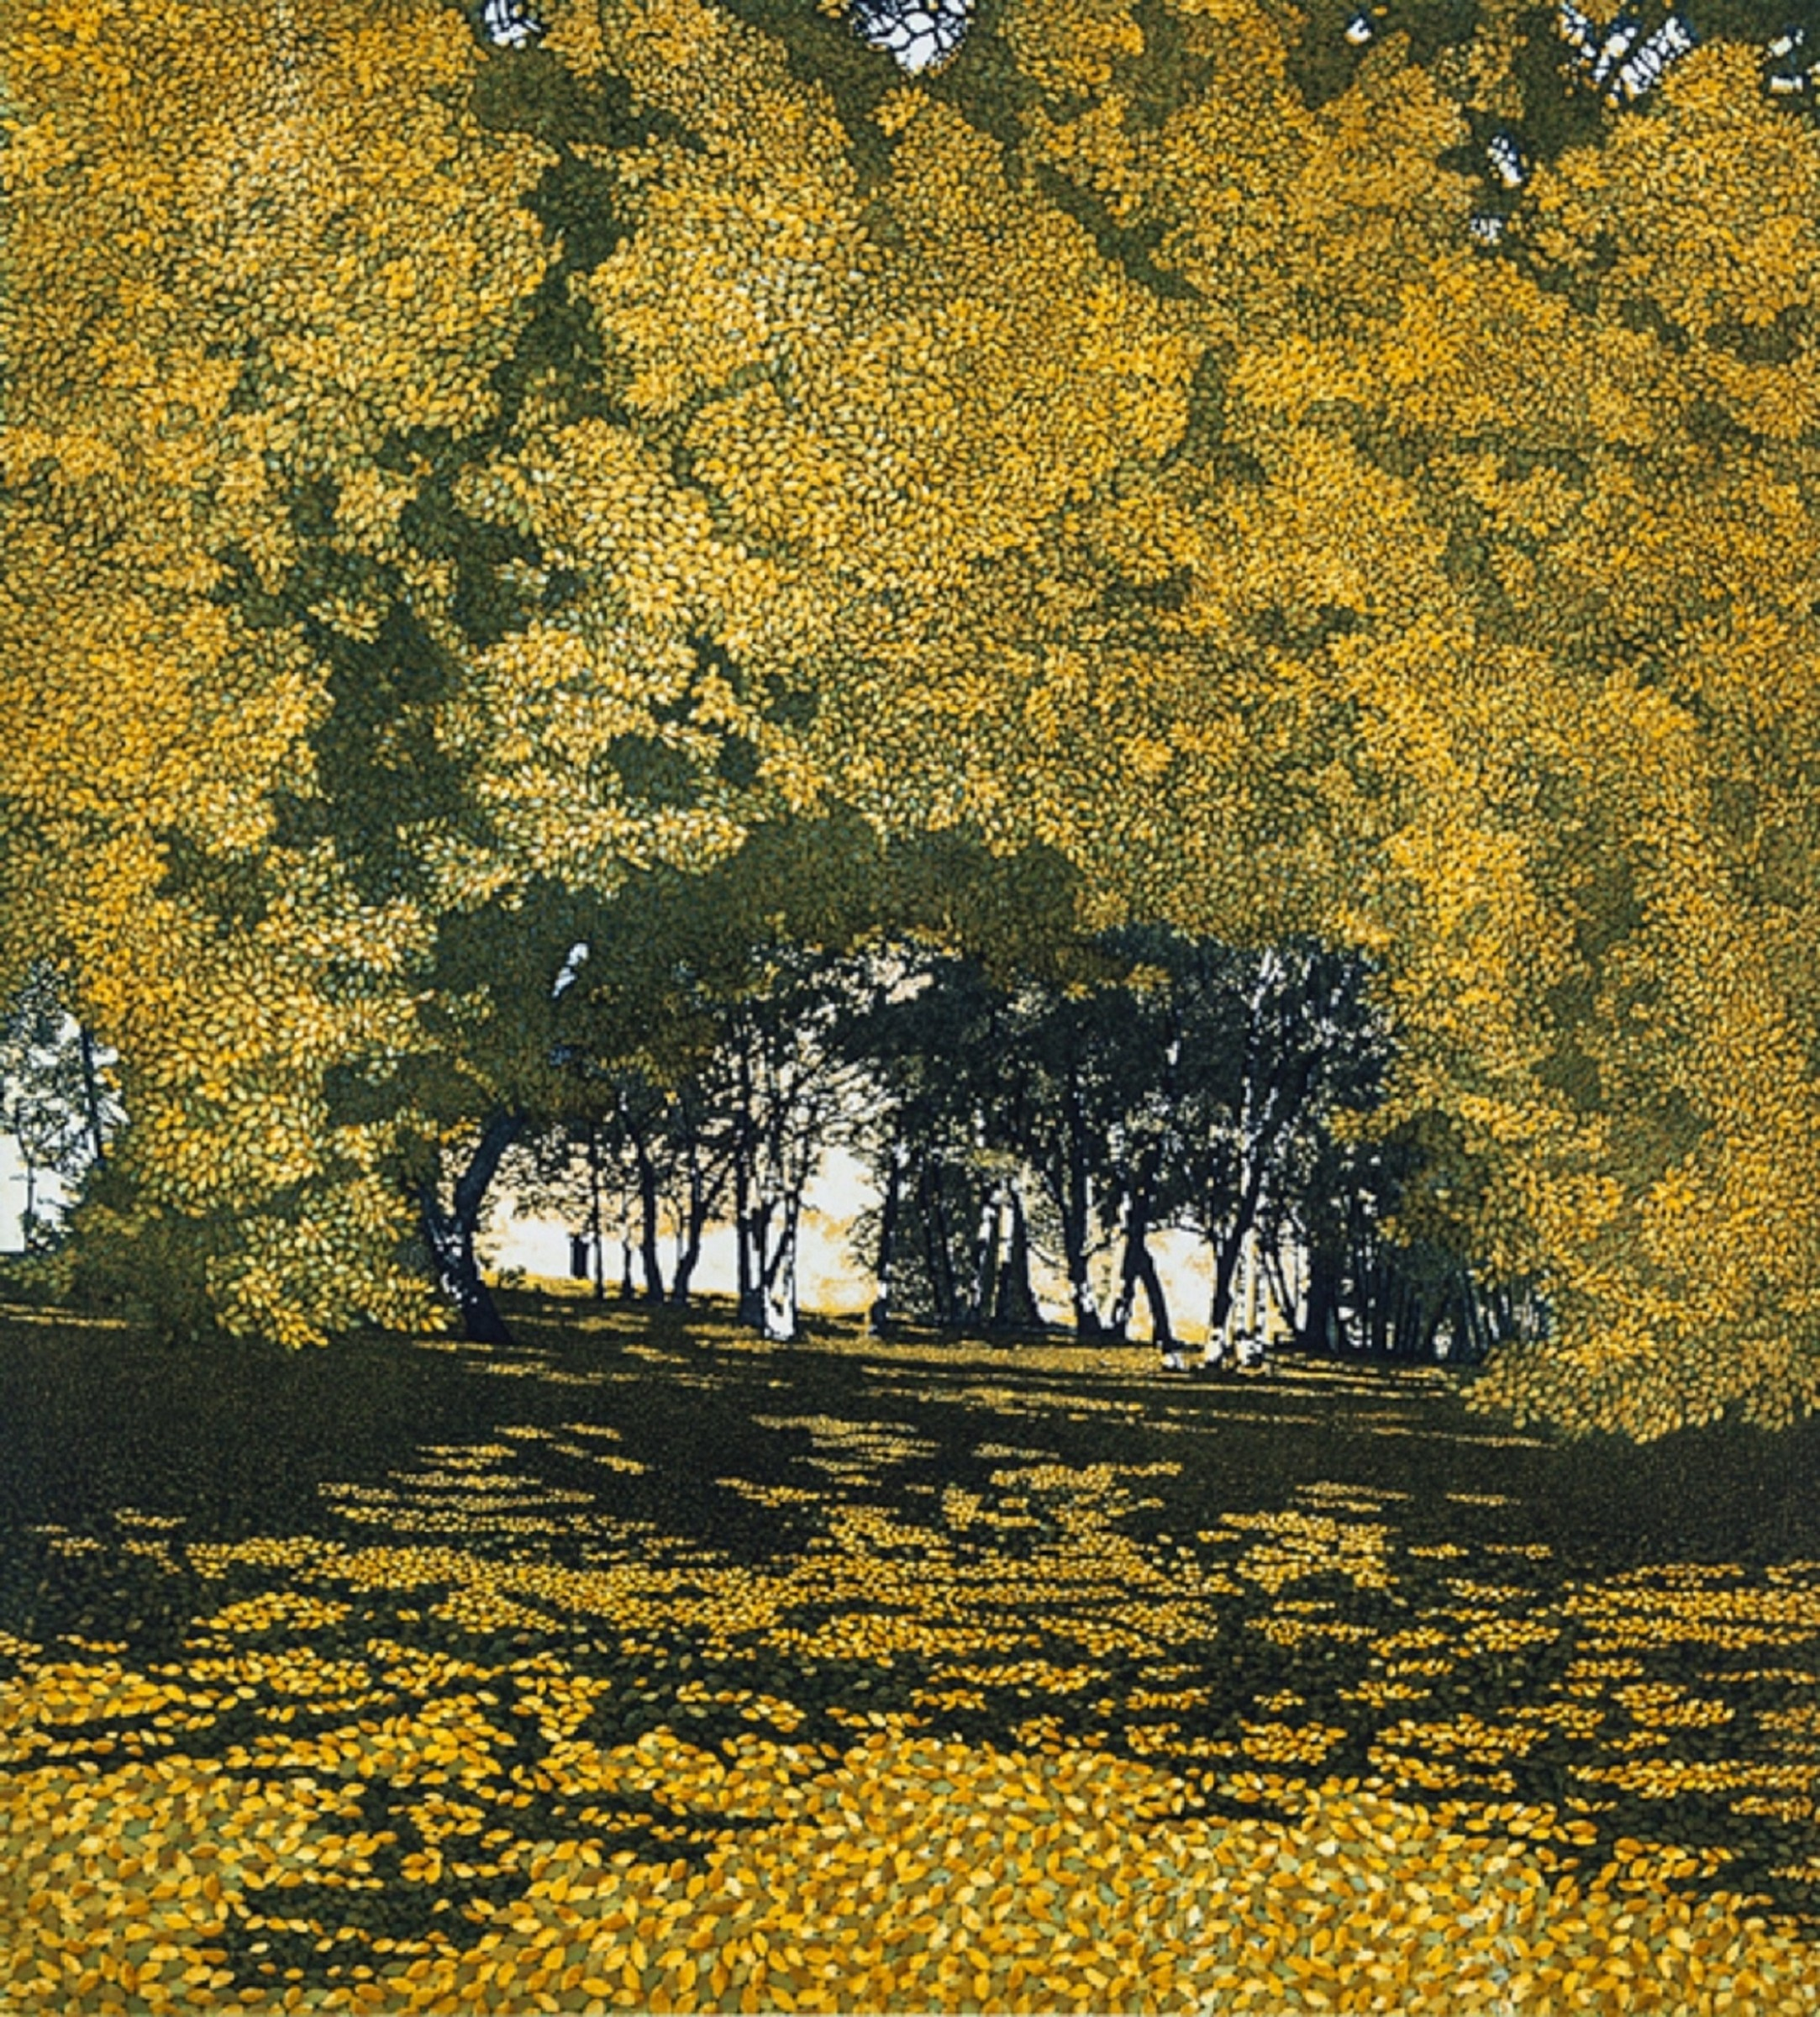 <span class=&#34;link fancybox-details-link&#34;><a href=&#34;/artists/74-phil-greenwood-re/works/9629/&#34;>View Detail Page</a></span><div class=&#34;artist&#34;><span class=&#34;artist&#34;><strong>Phil Greenwood RE</strong></span></div>